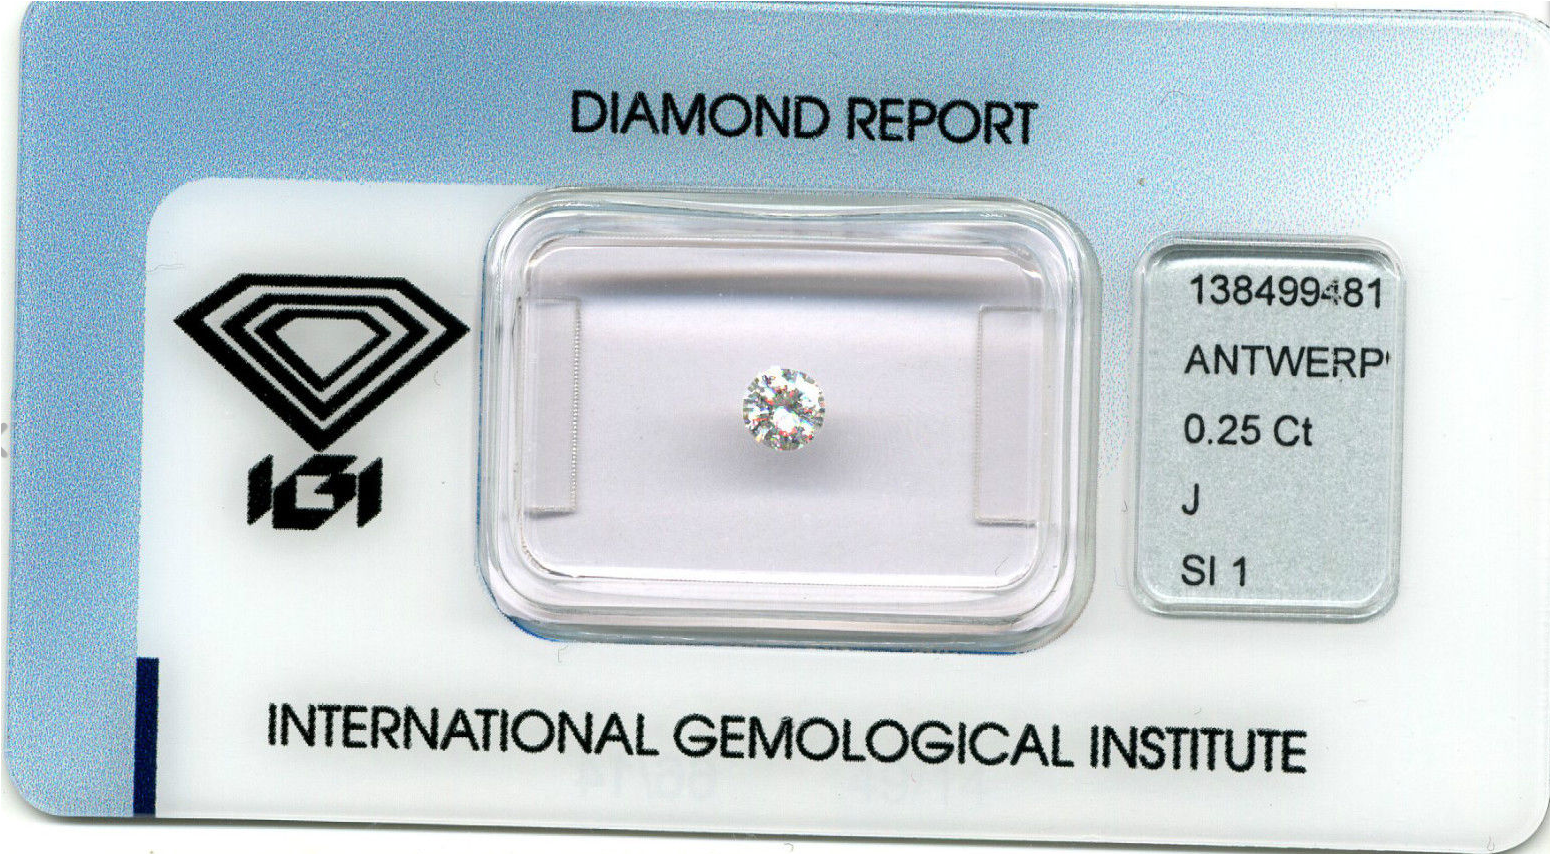 diamonds certified round engagement igi ernest diamond rings leo prev jones next platinum ring solitaire